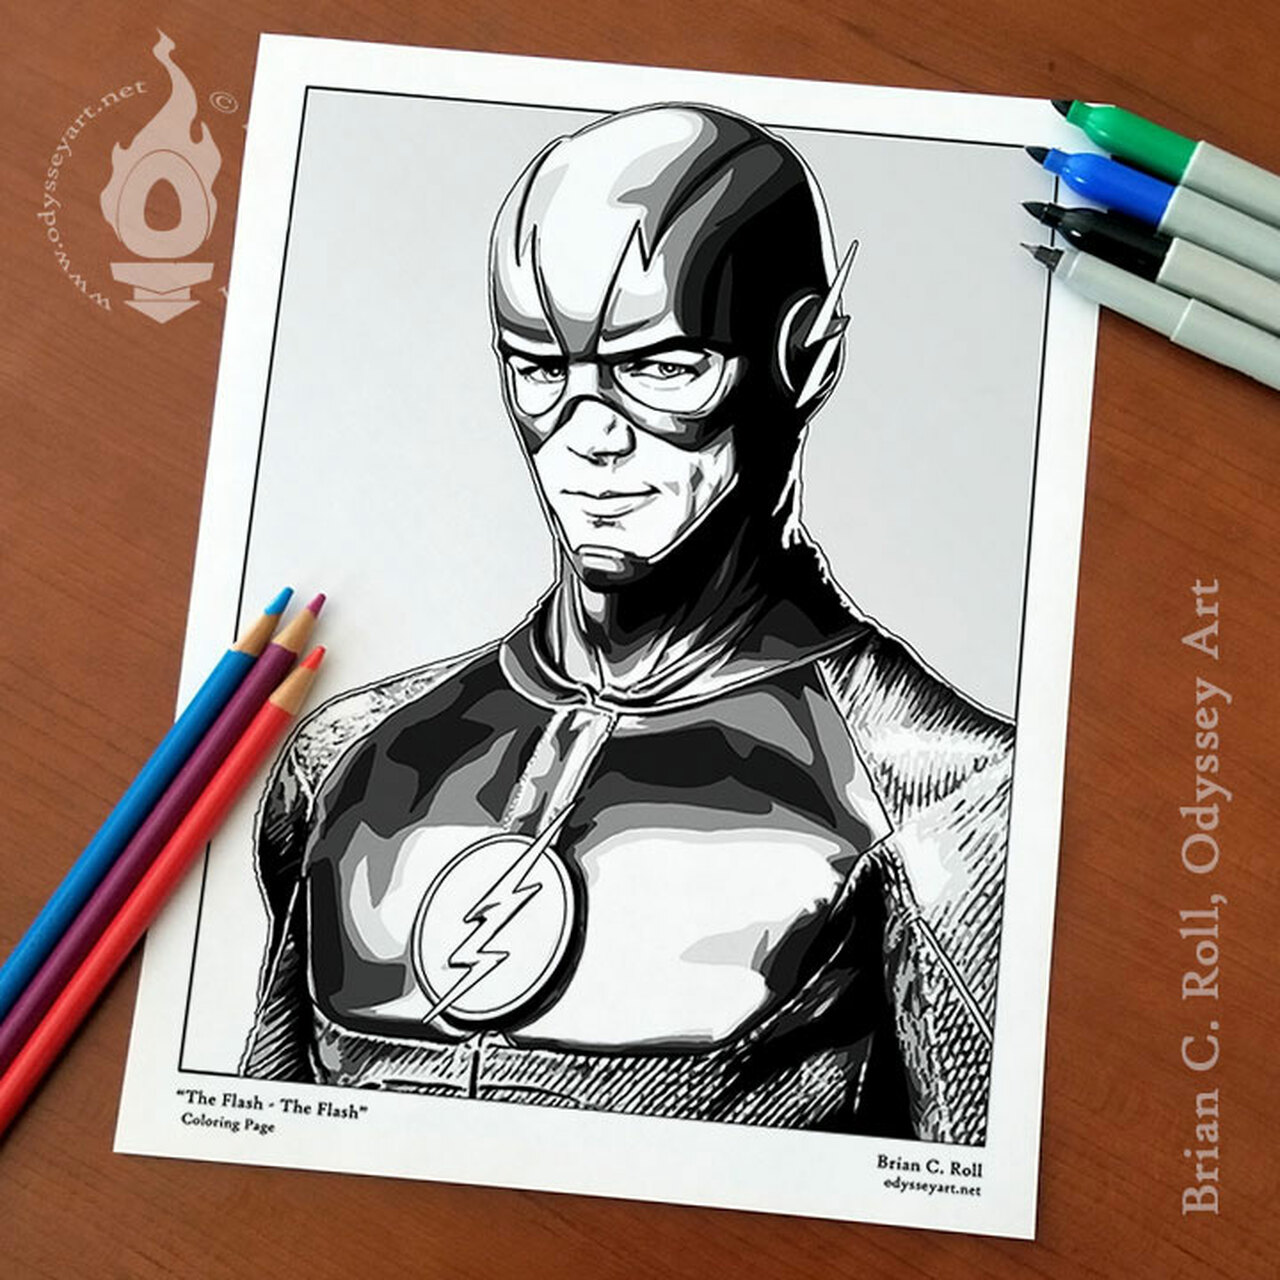 the flash coloring odyssey art of brian roll 8x11coloringpage store2 moana printable coloring pages The Flash Coloring Page